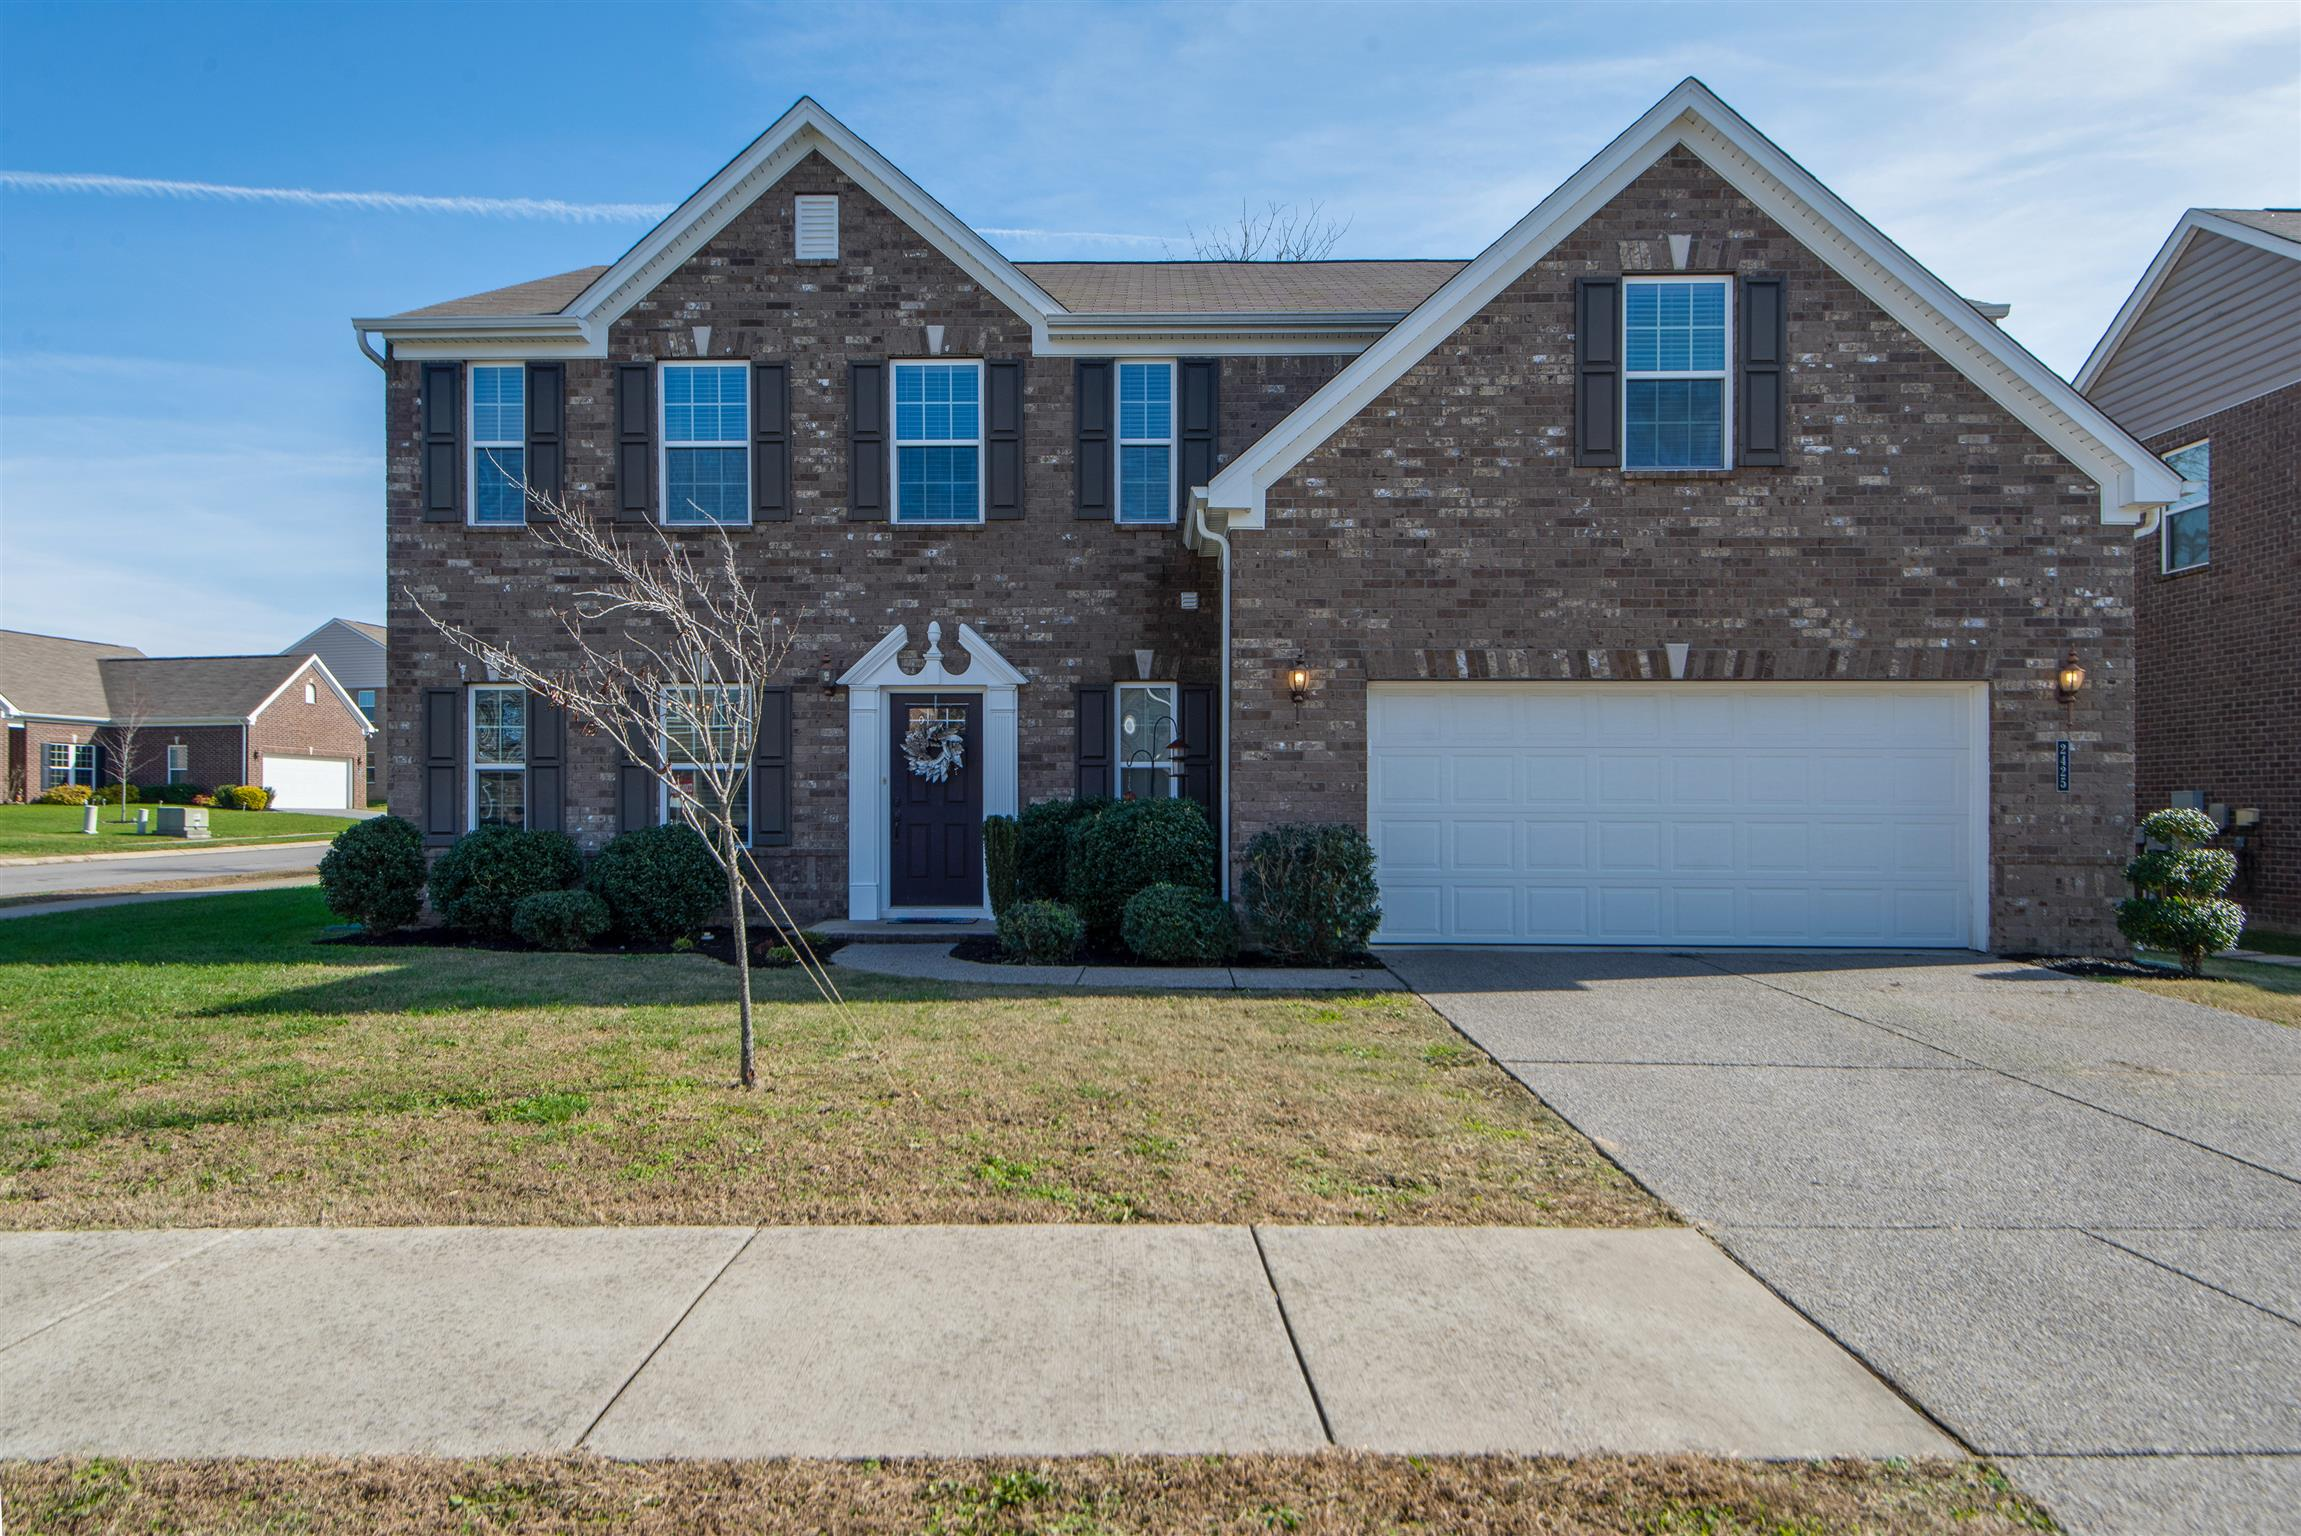 2425 Orchard St, Nolensville, Tennessee